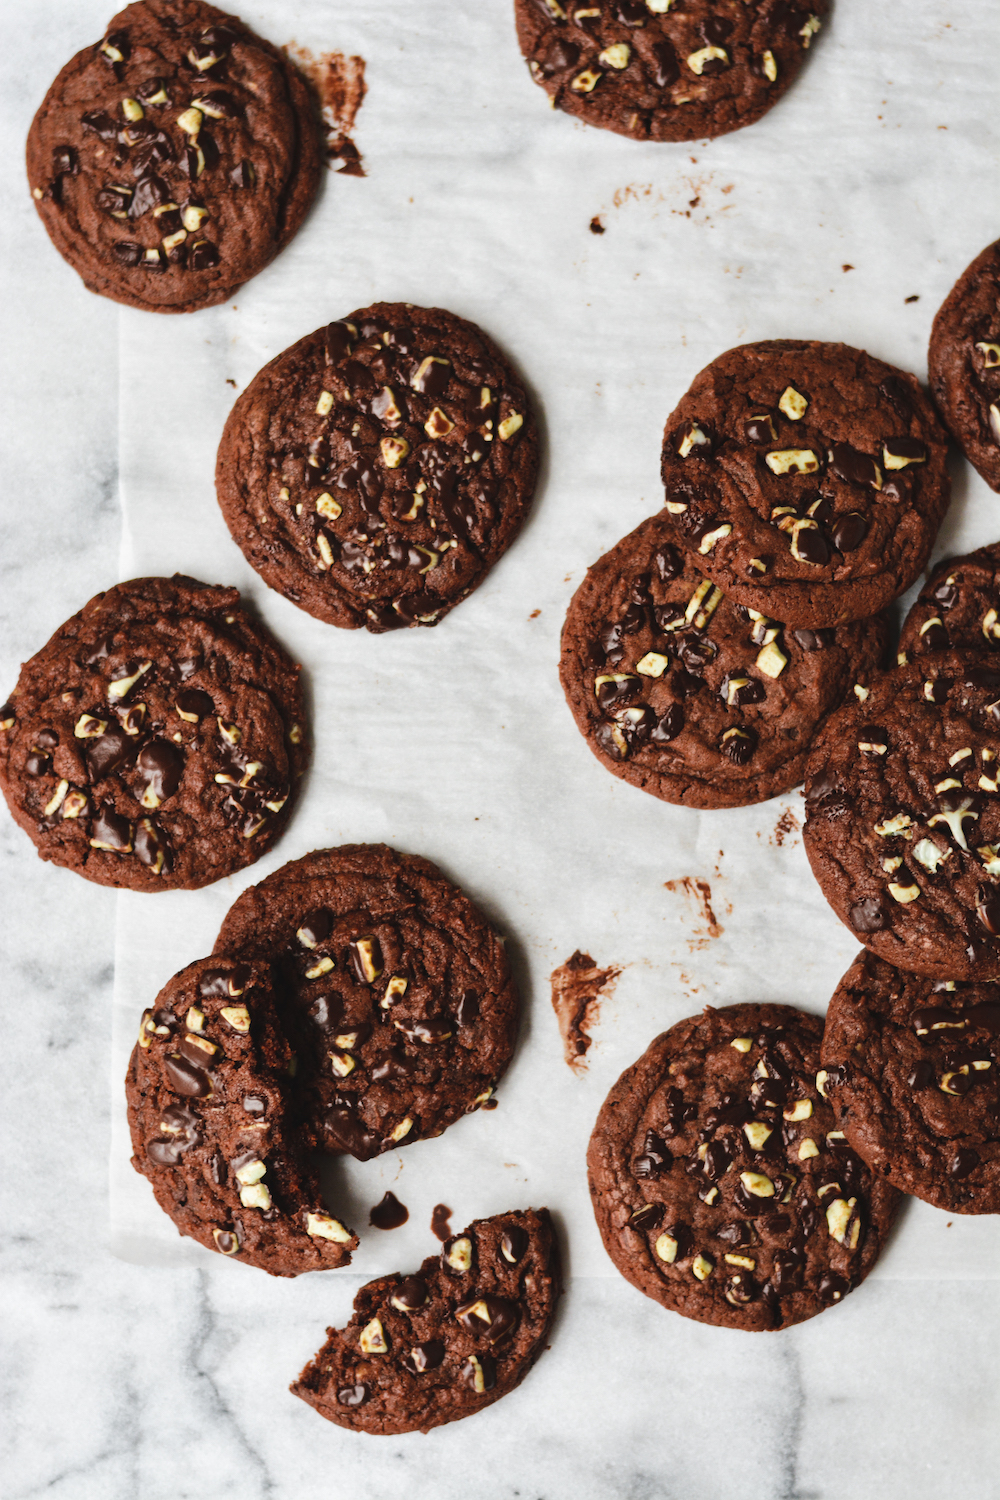 chocolate mint cookies - bethcakes.com